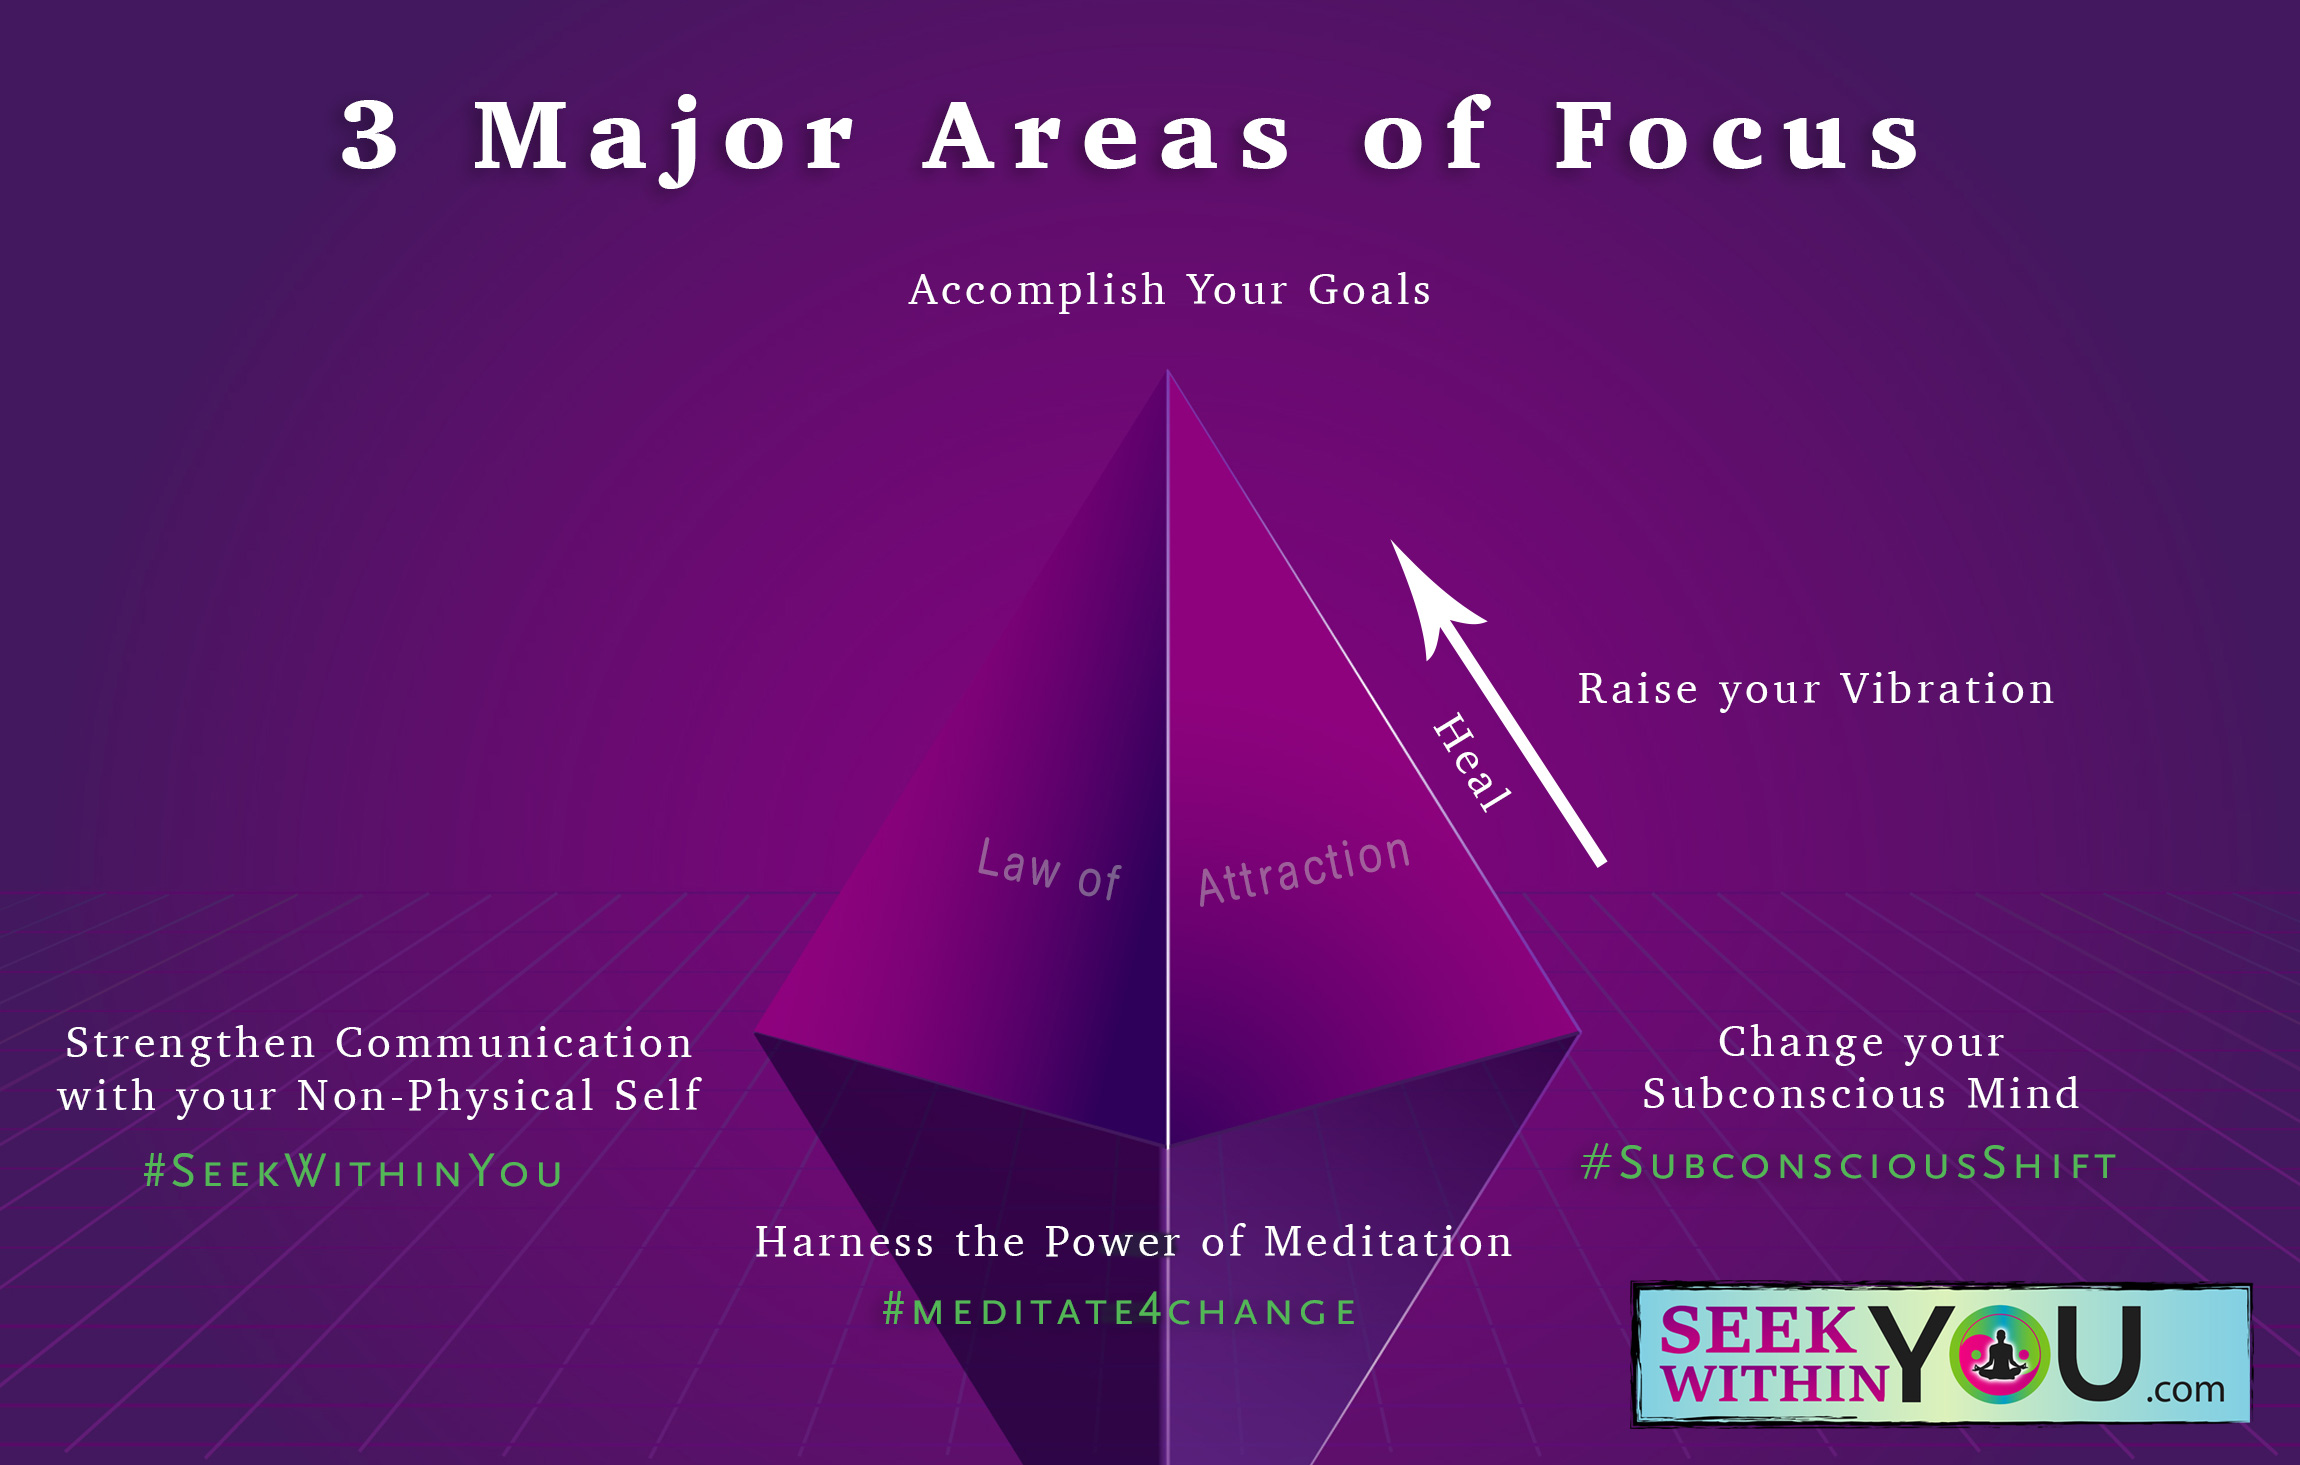 Seek Within You Areas of Focus